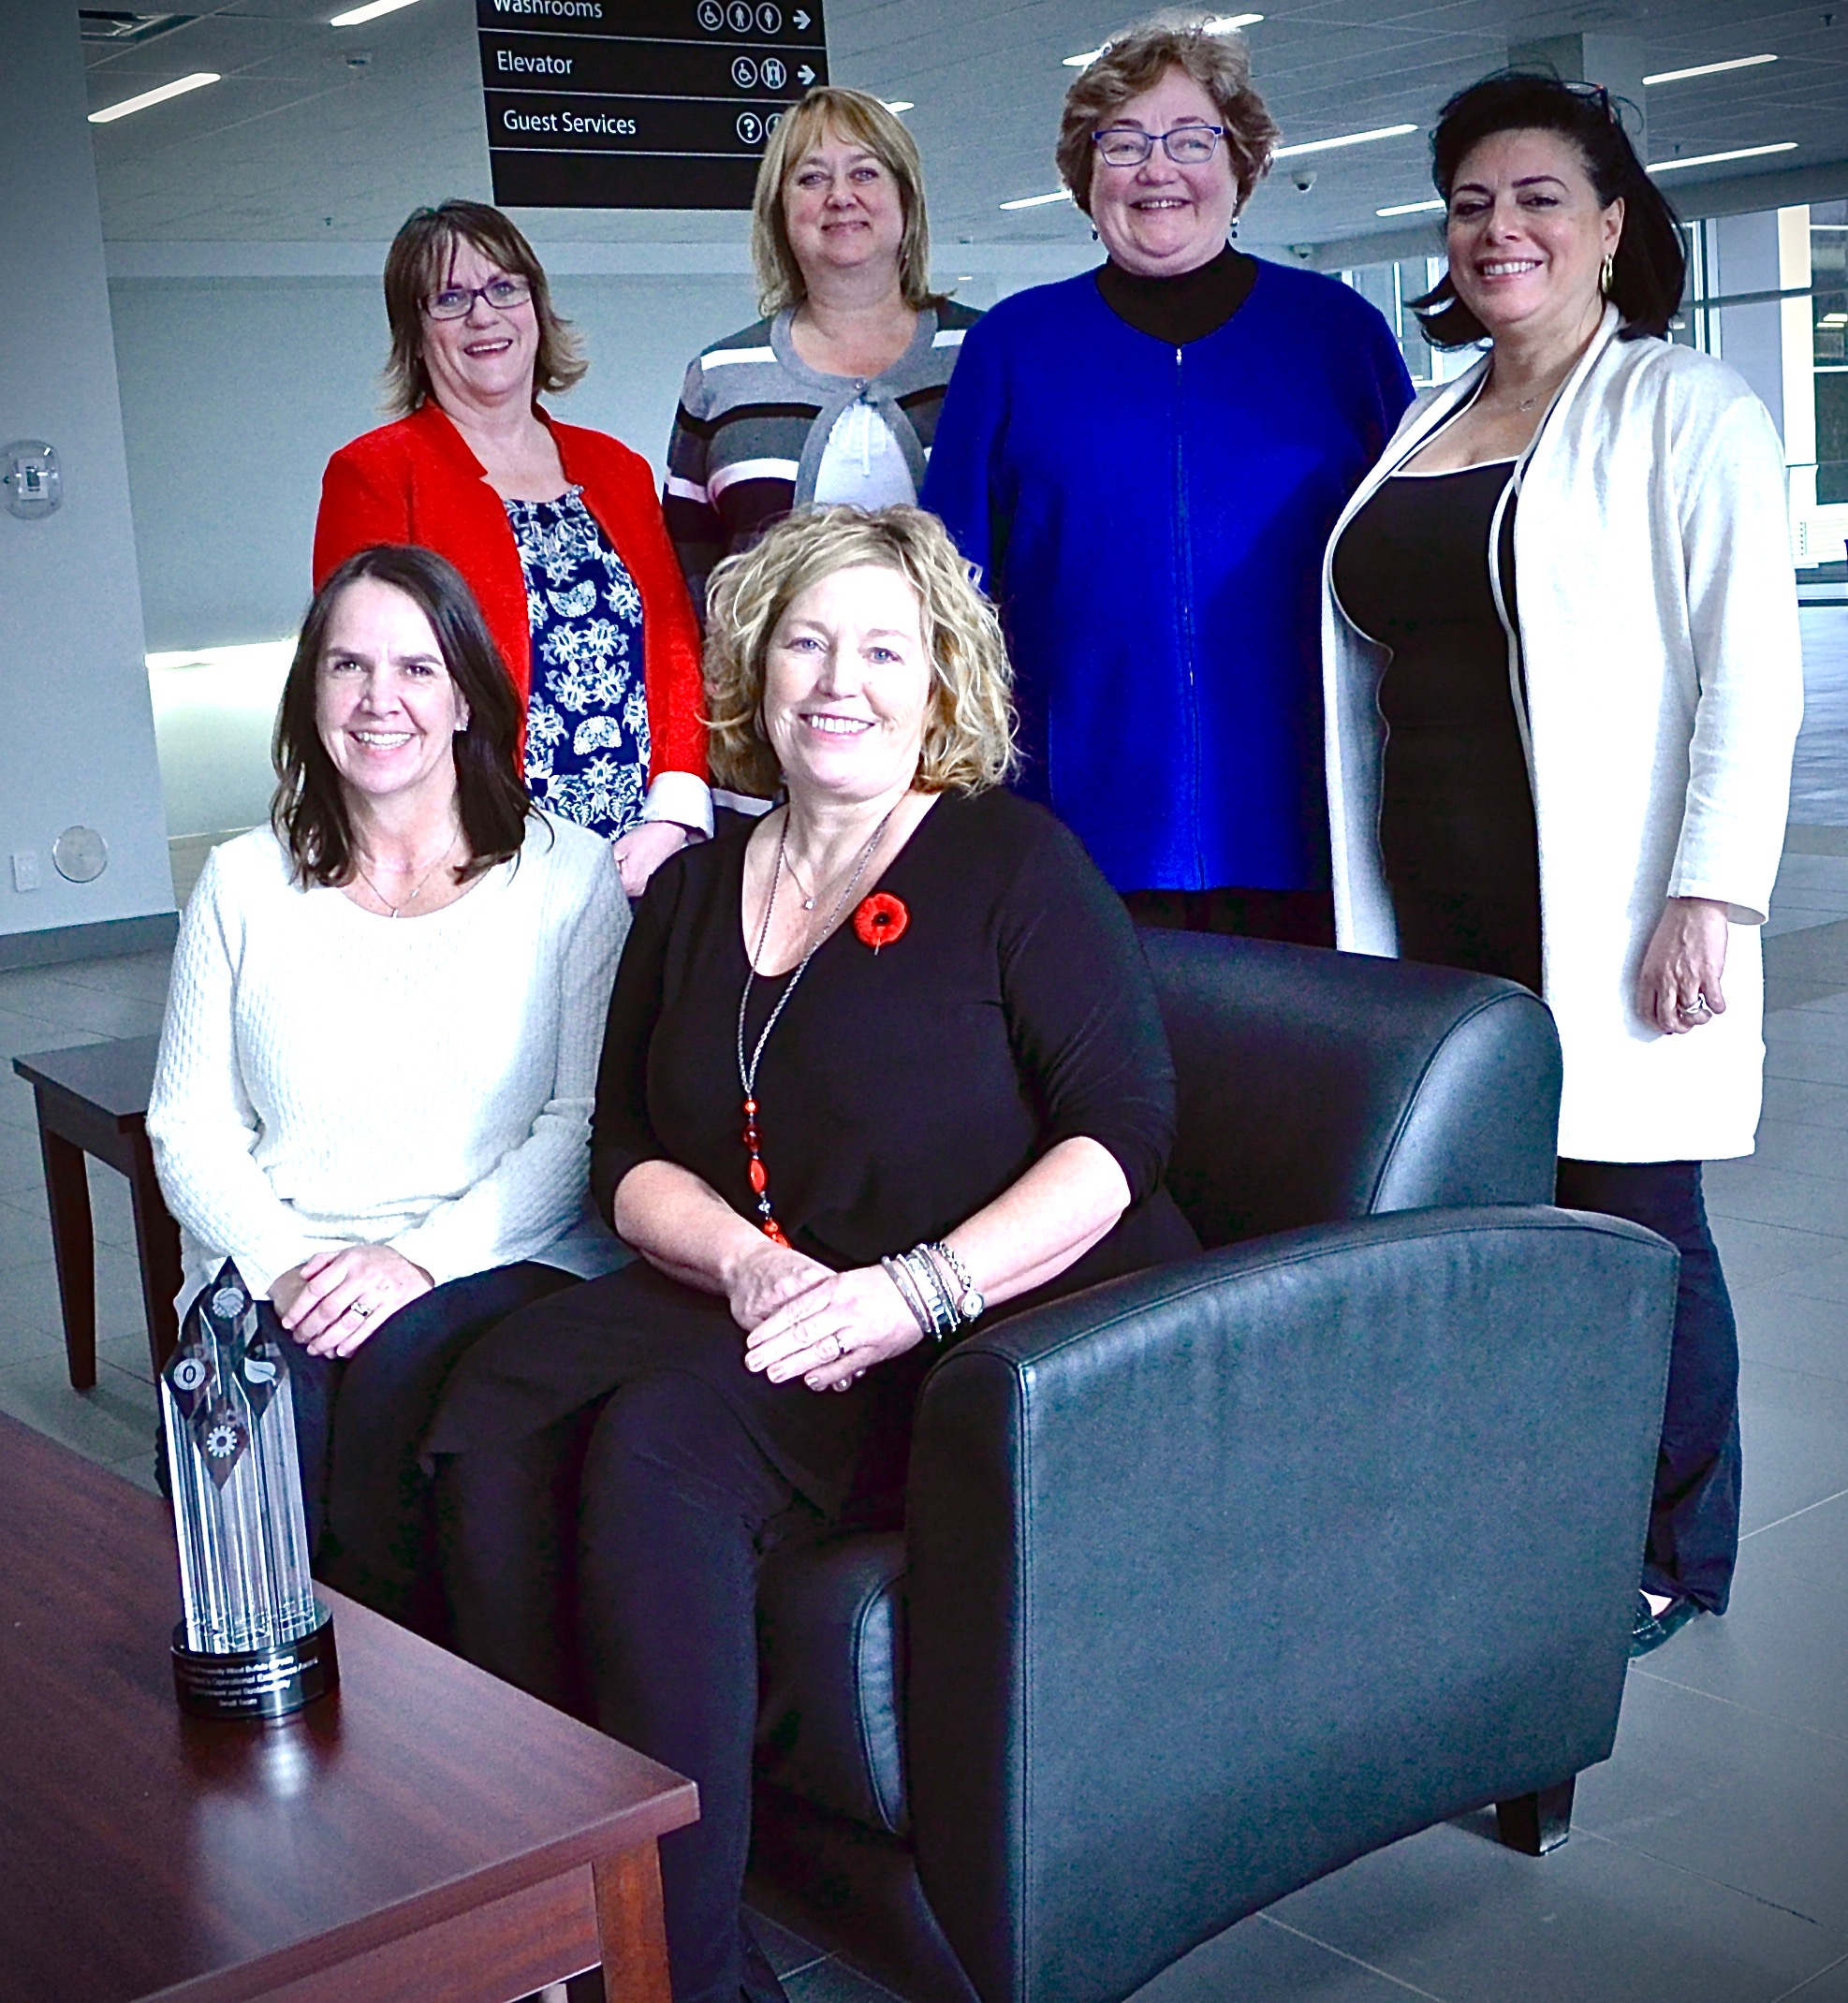 Suncor Energy last week honoured Fort McMurray's Social Prosperity Wood Buffalo Initiative with a President's Operational Excellence Award. The SPWB steering committee includes (seated, from left) Kim Nordbye and Diane Shannon; (standing, from left) Bonnah Carey, Tracey Carnochan, Cathy Brothers and Sana Elache.